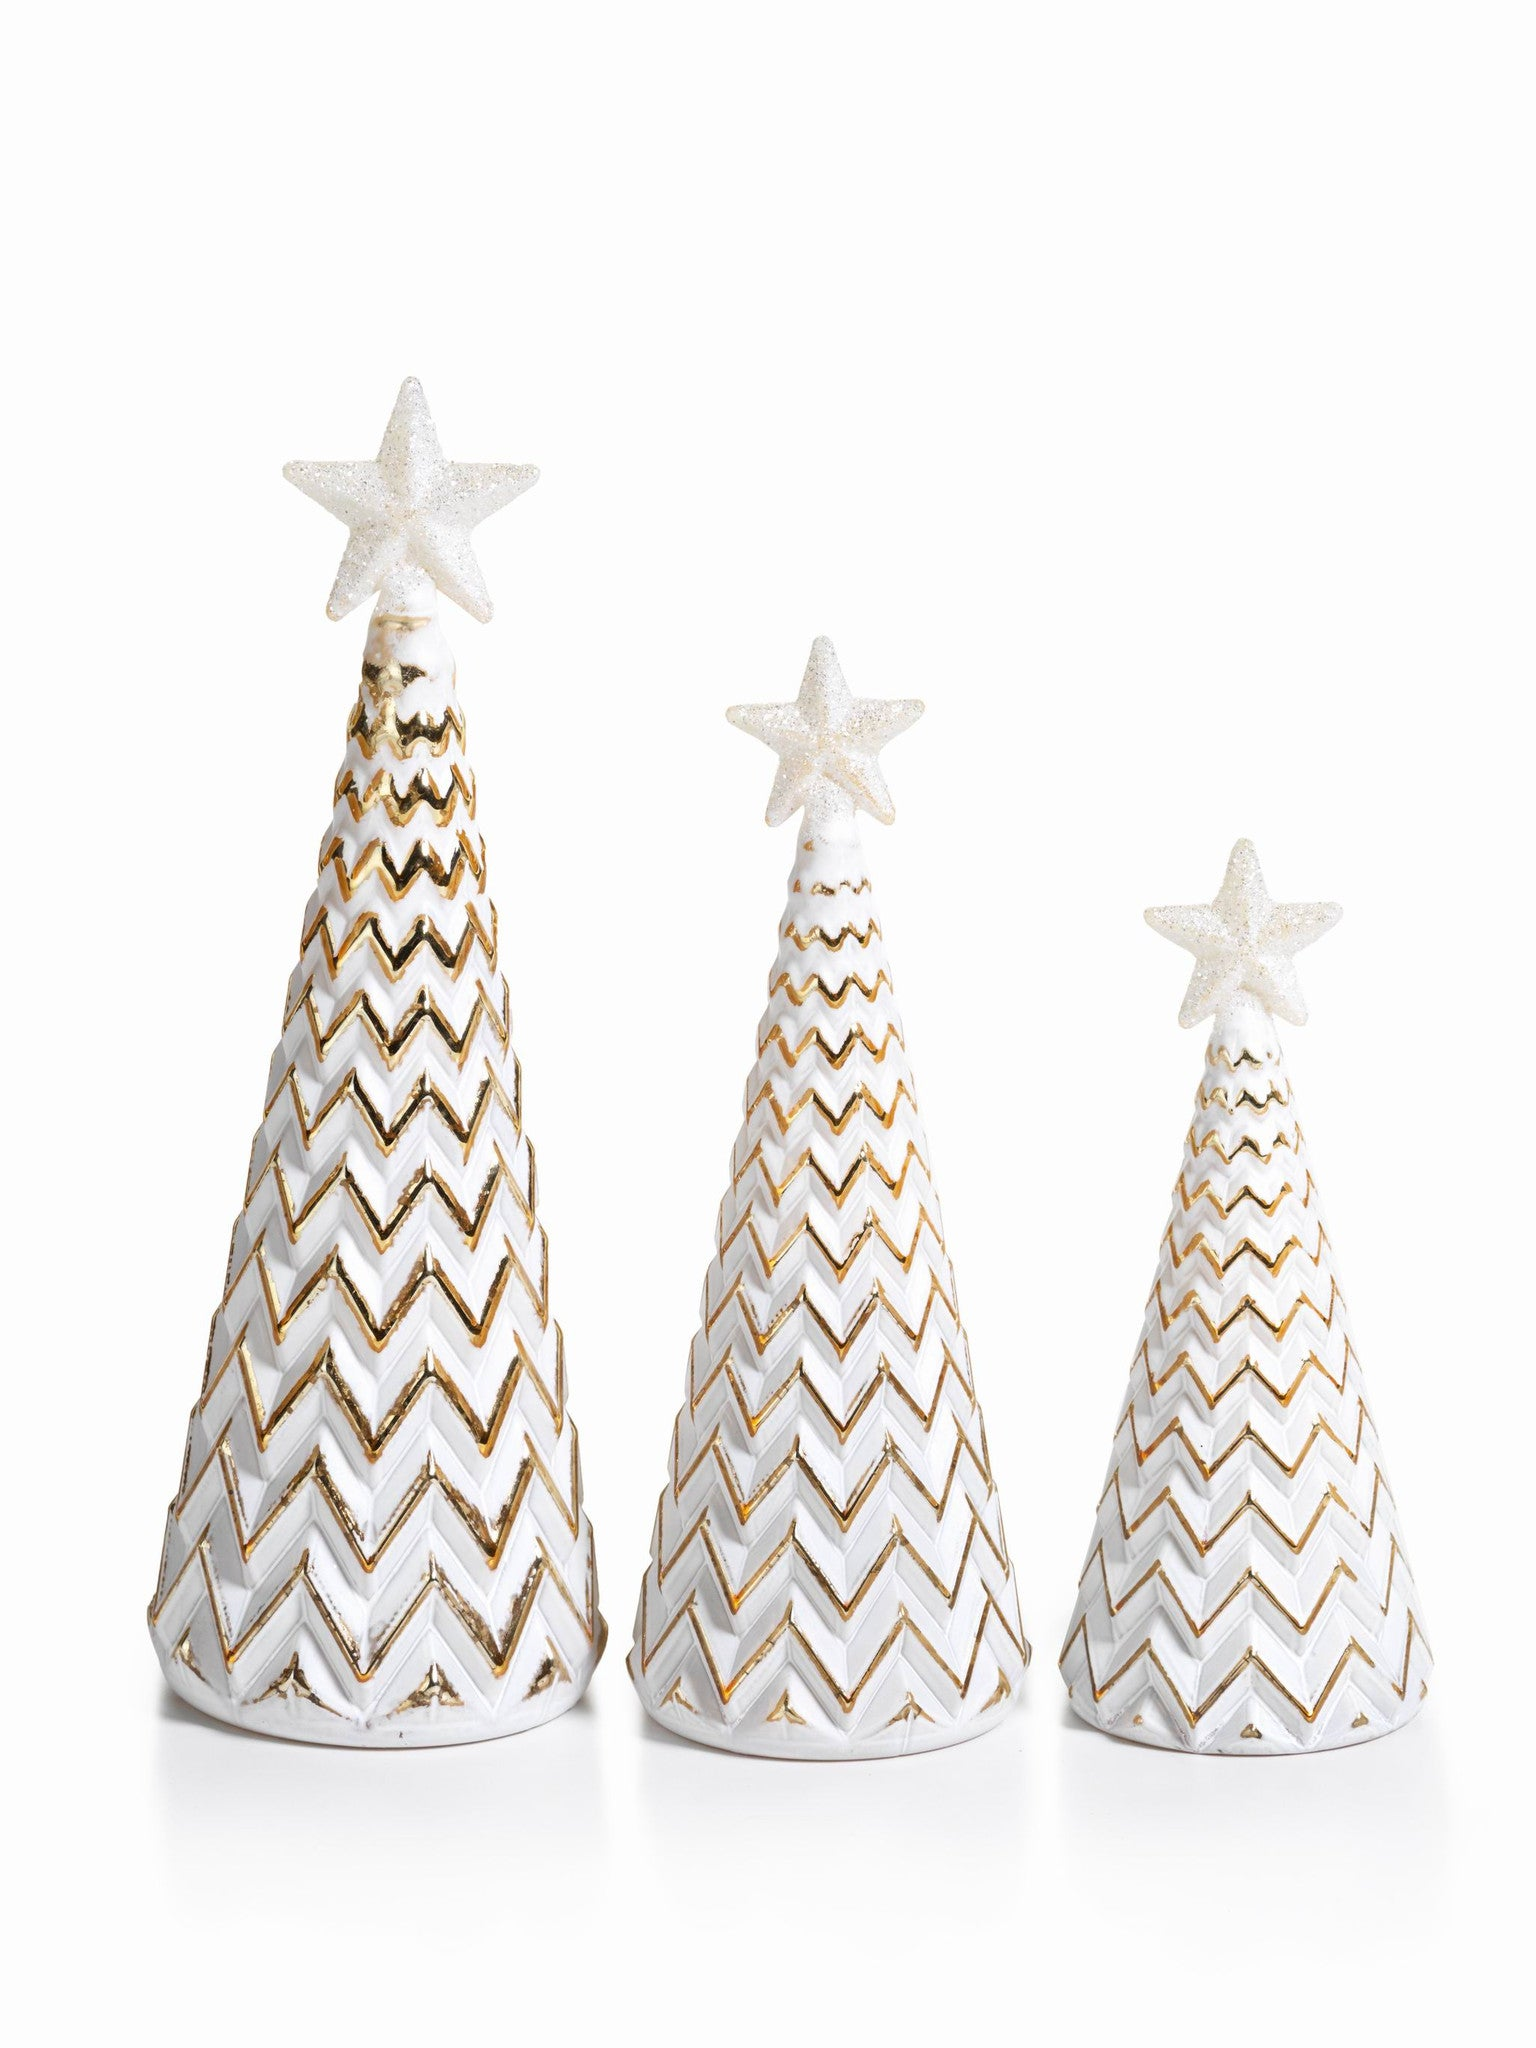 LED Glass Decorative Tree - Gold - Set of 6 -  - CARLYLE AVENUE - 6